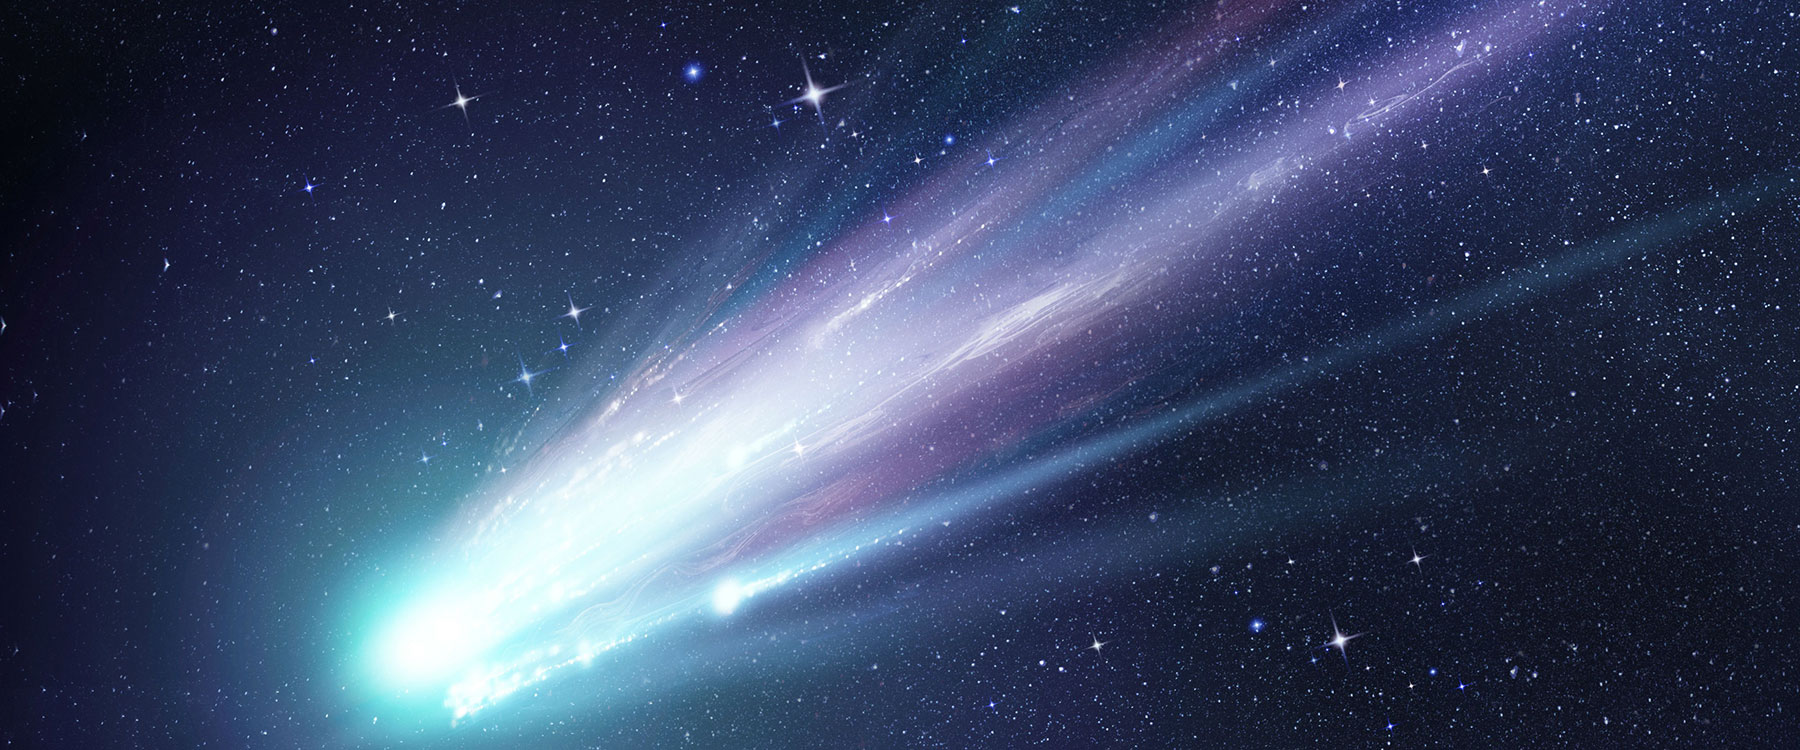 Comet flies through the sky